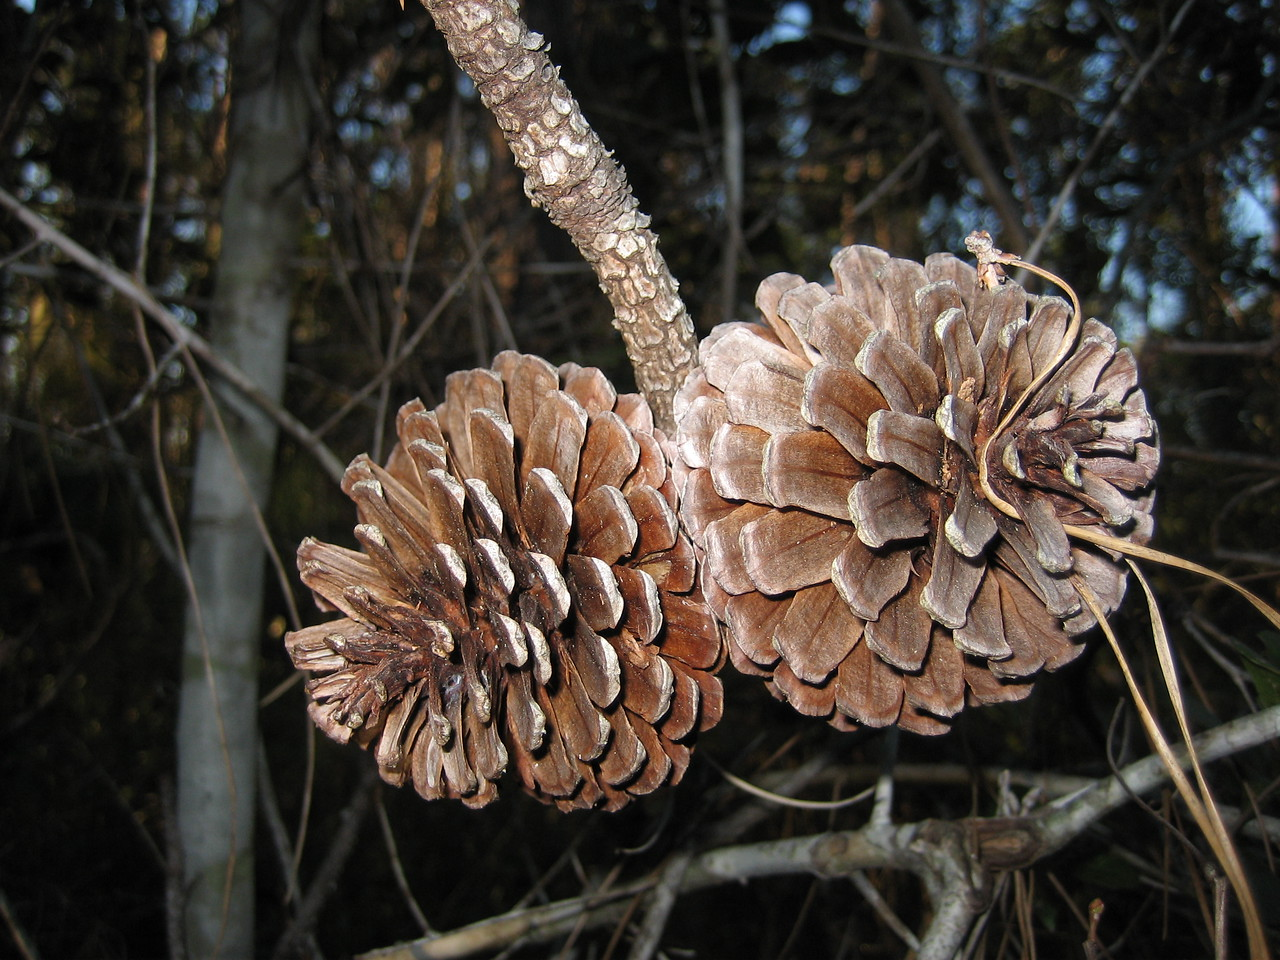 Sand pine cones<br /> PHOTO CREDIT: Sandra Friend / Florida Trail Association